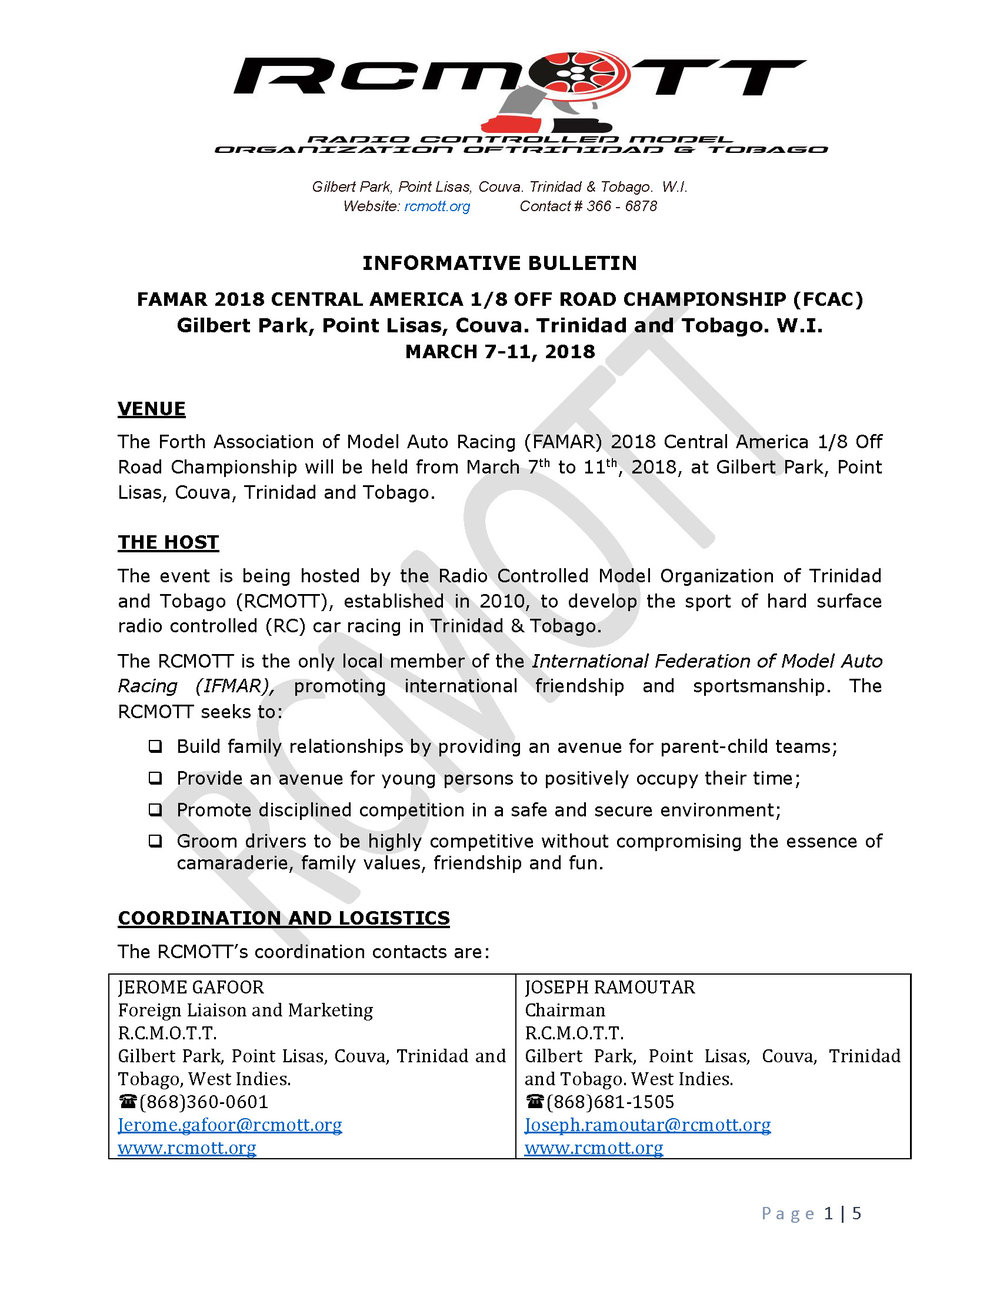 FCAC information bulletin_Page_1.jpg